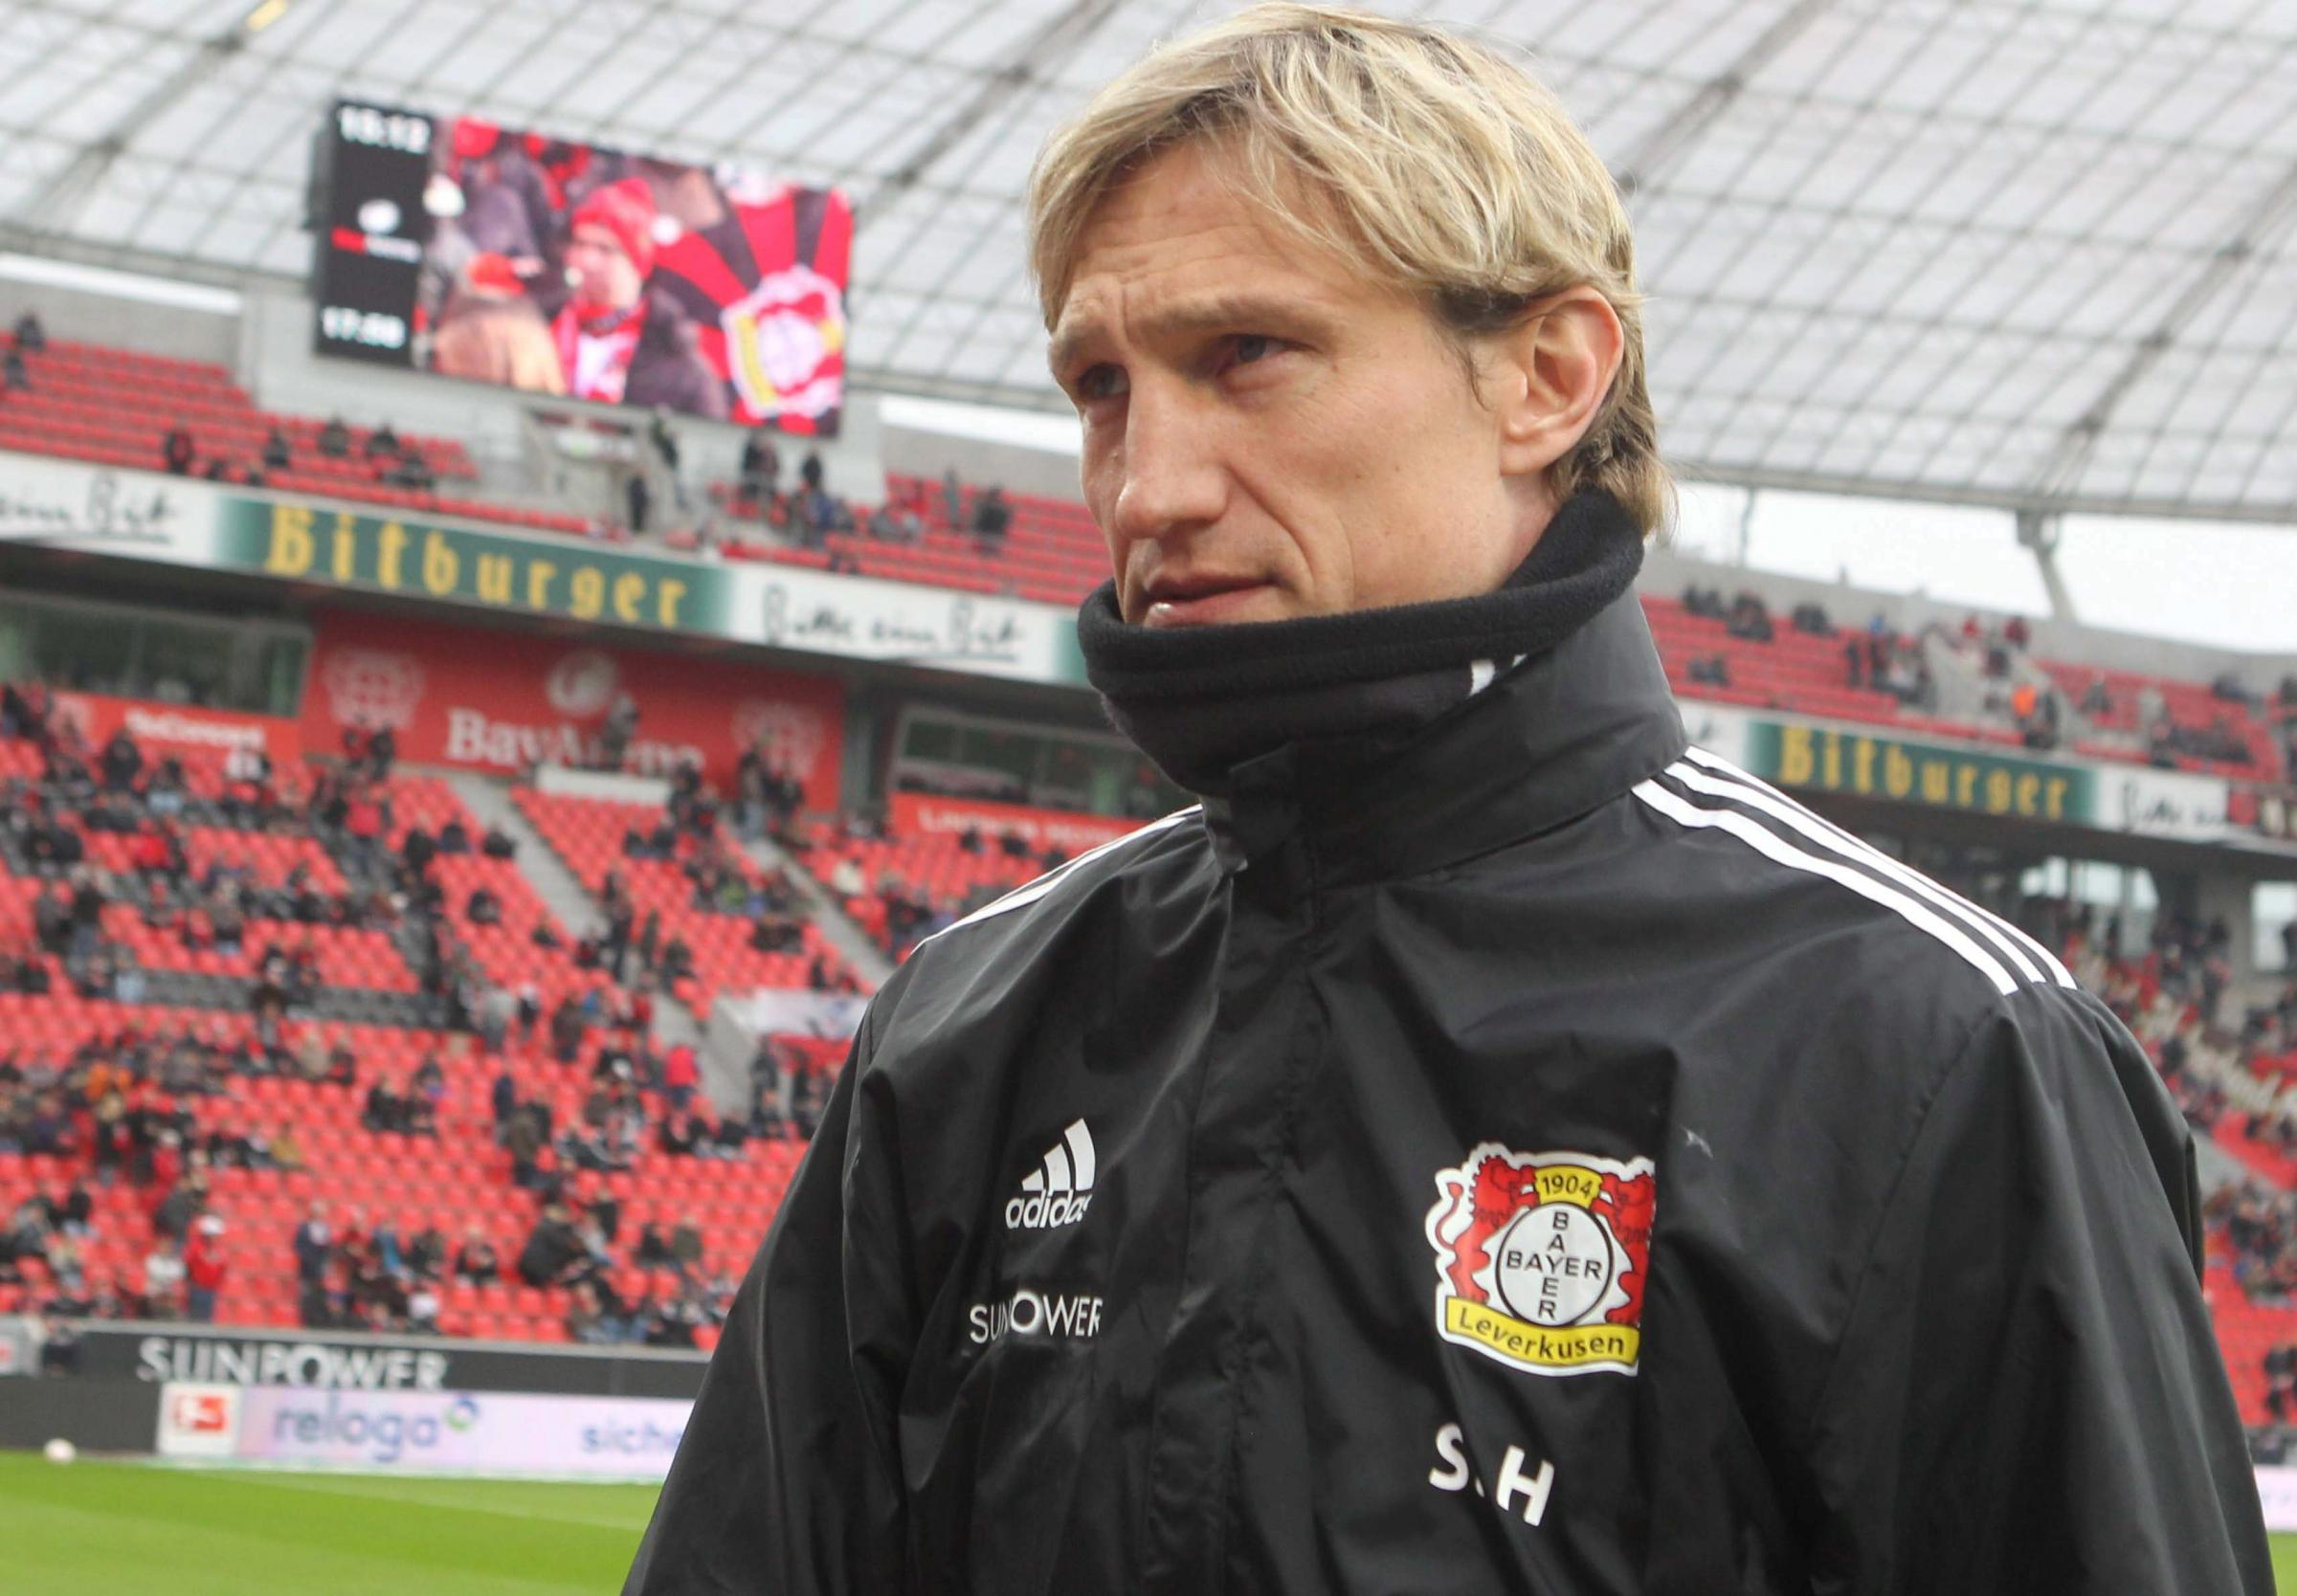 Sami Hyypia during his time in charge of Bayer Leverkusen. Pic by Andreas Pohl/Bild Zeitung